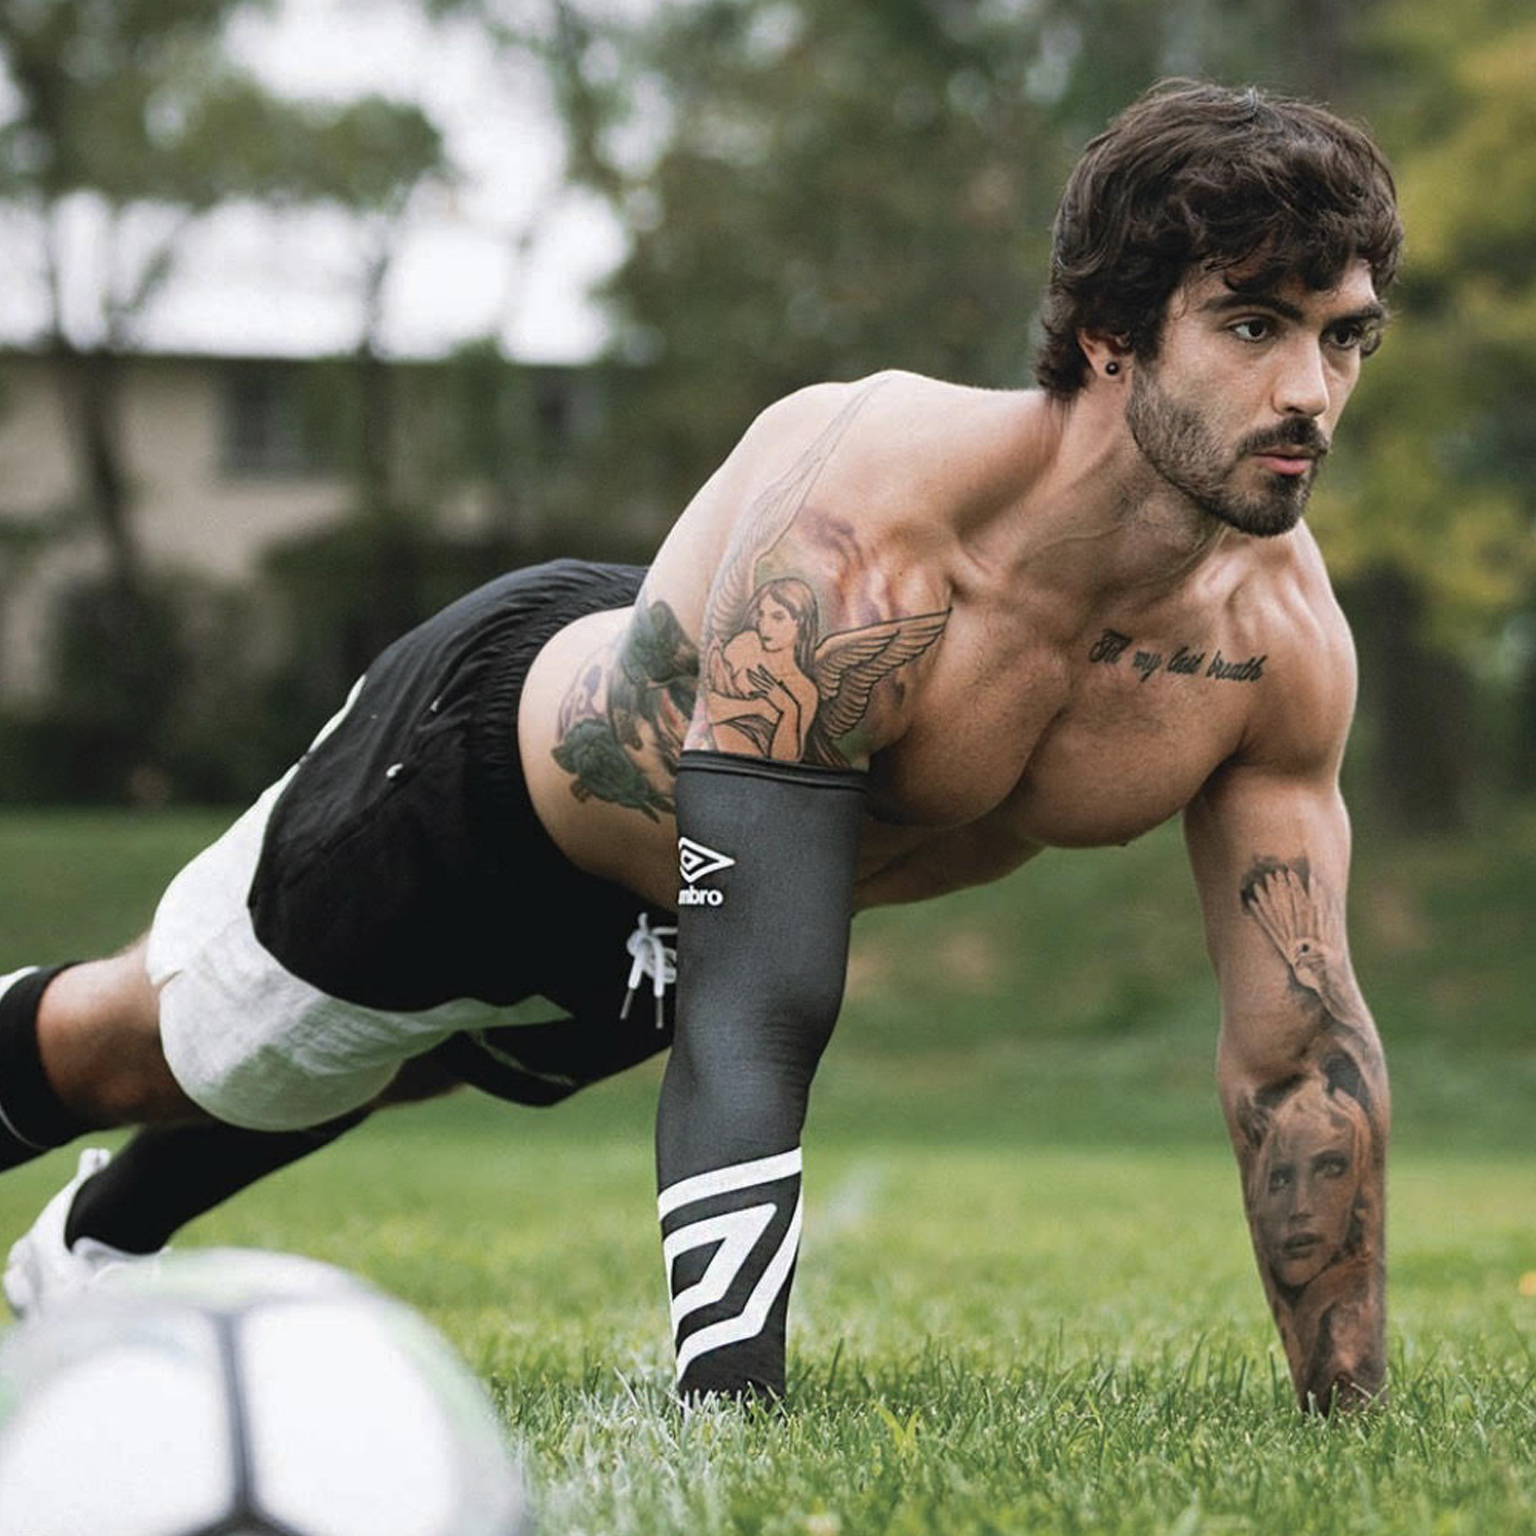 Toronto-Fitness-Model-Agency-Fitness-Casual-Commercial-Rob-Lopez-Athlete-Model